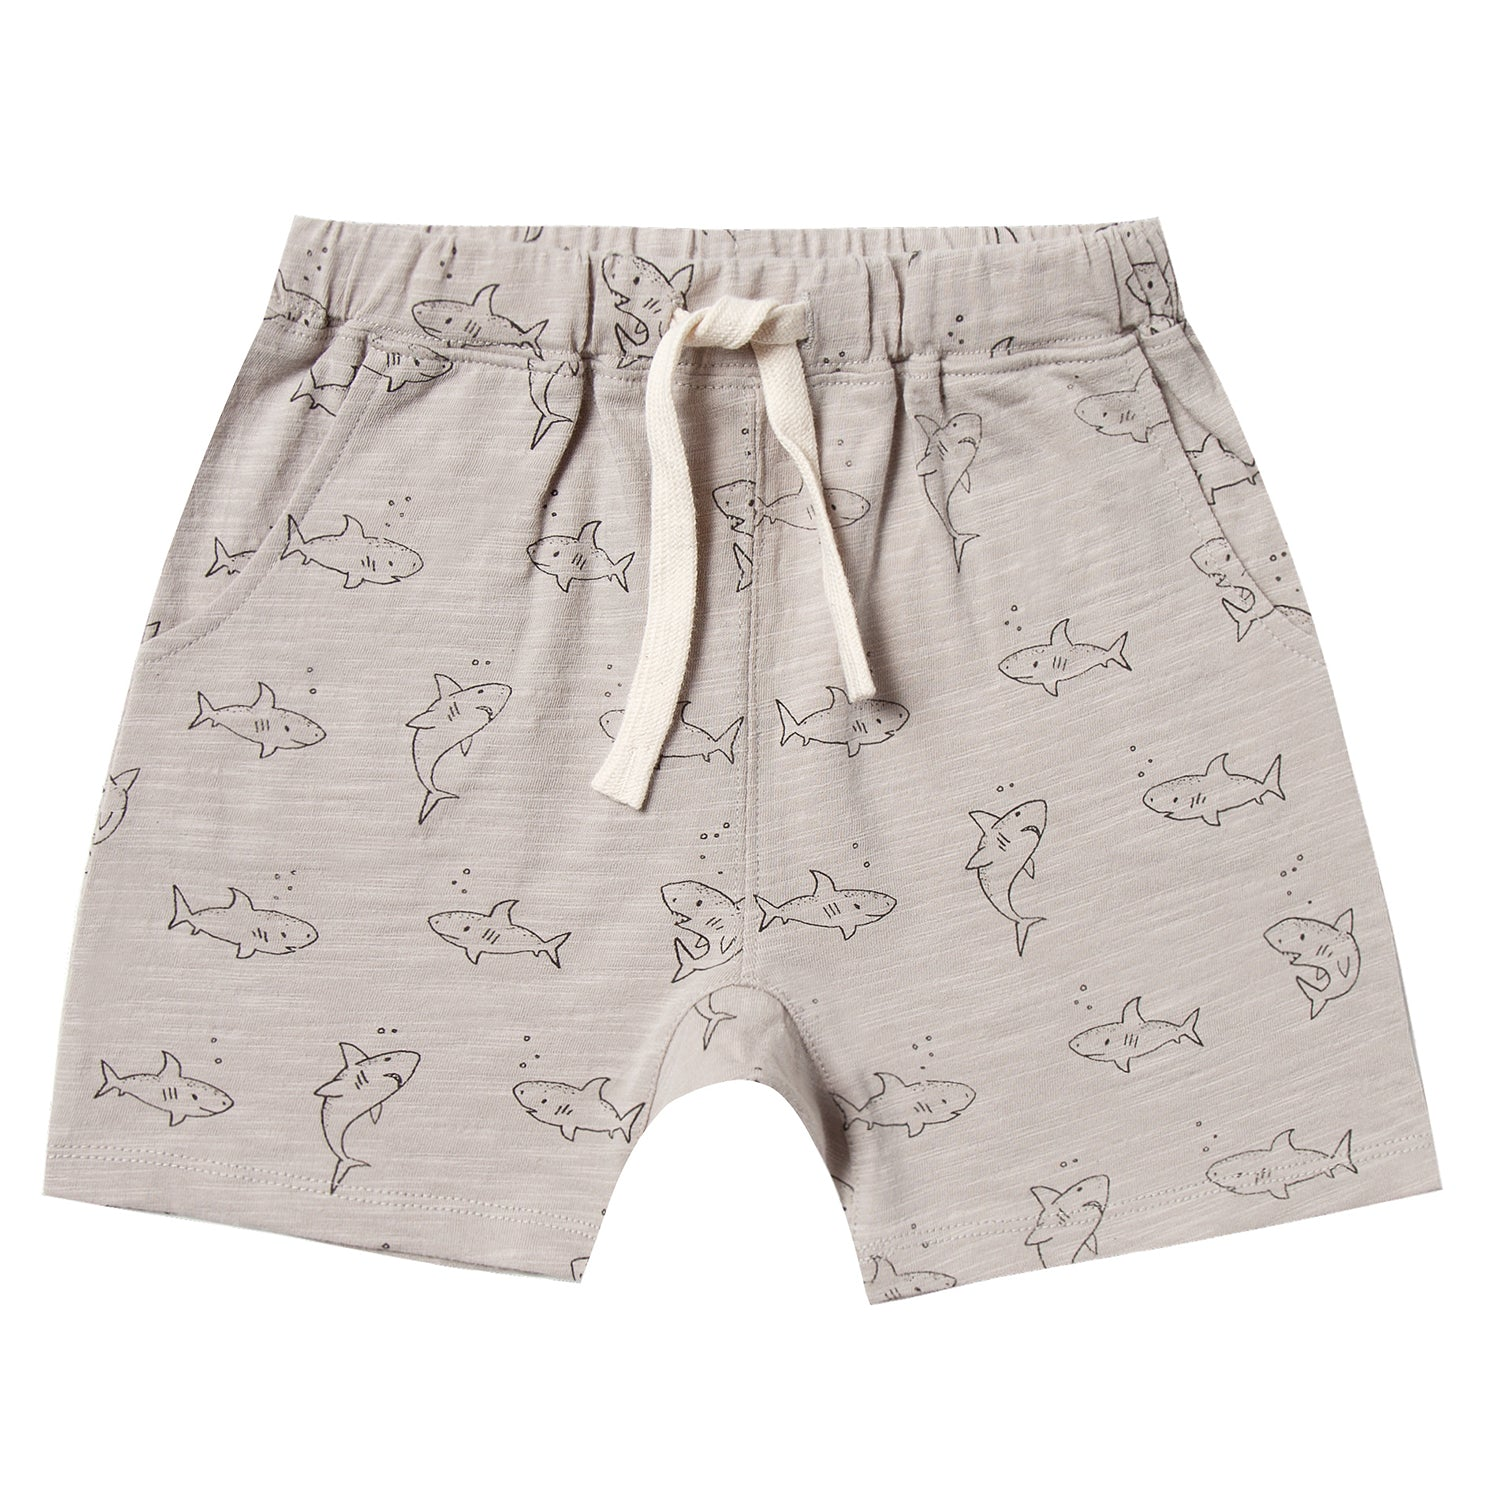 yoya, kids, boys, rylee and cru, summer, lightweight, lounge, graphic printed, pull on, drawstring shorts